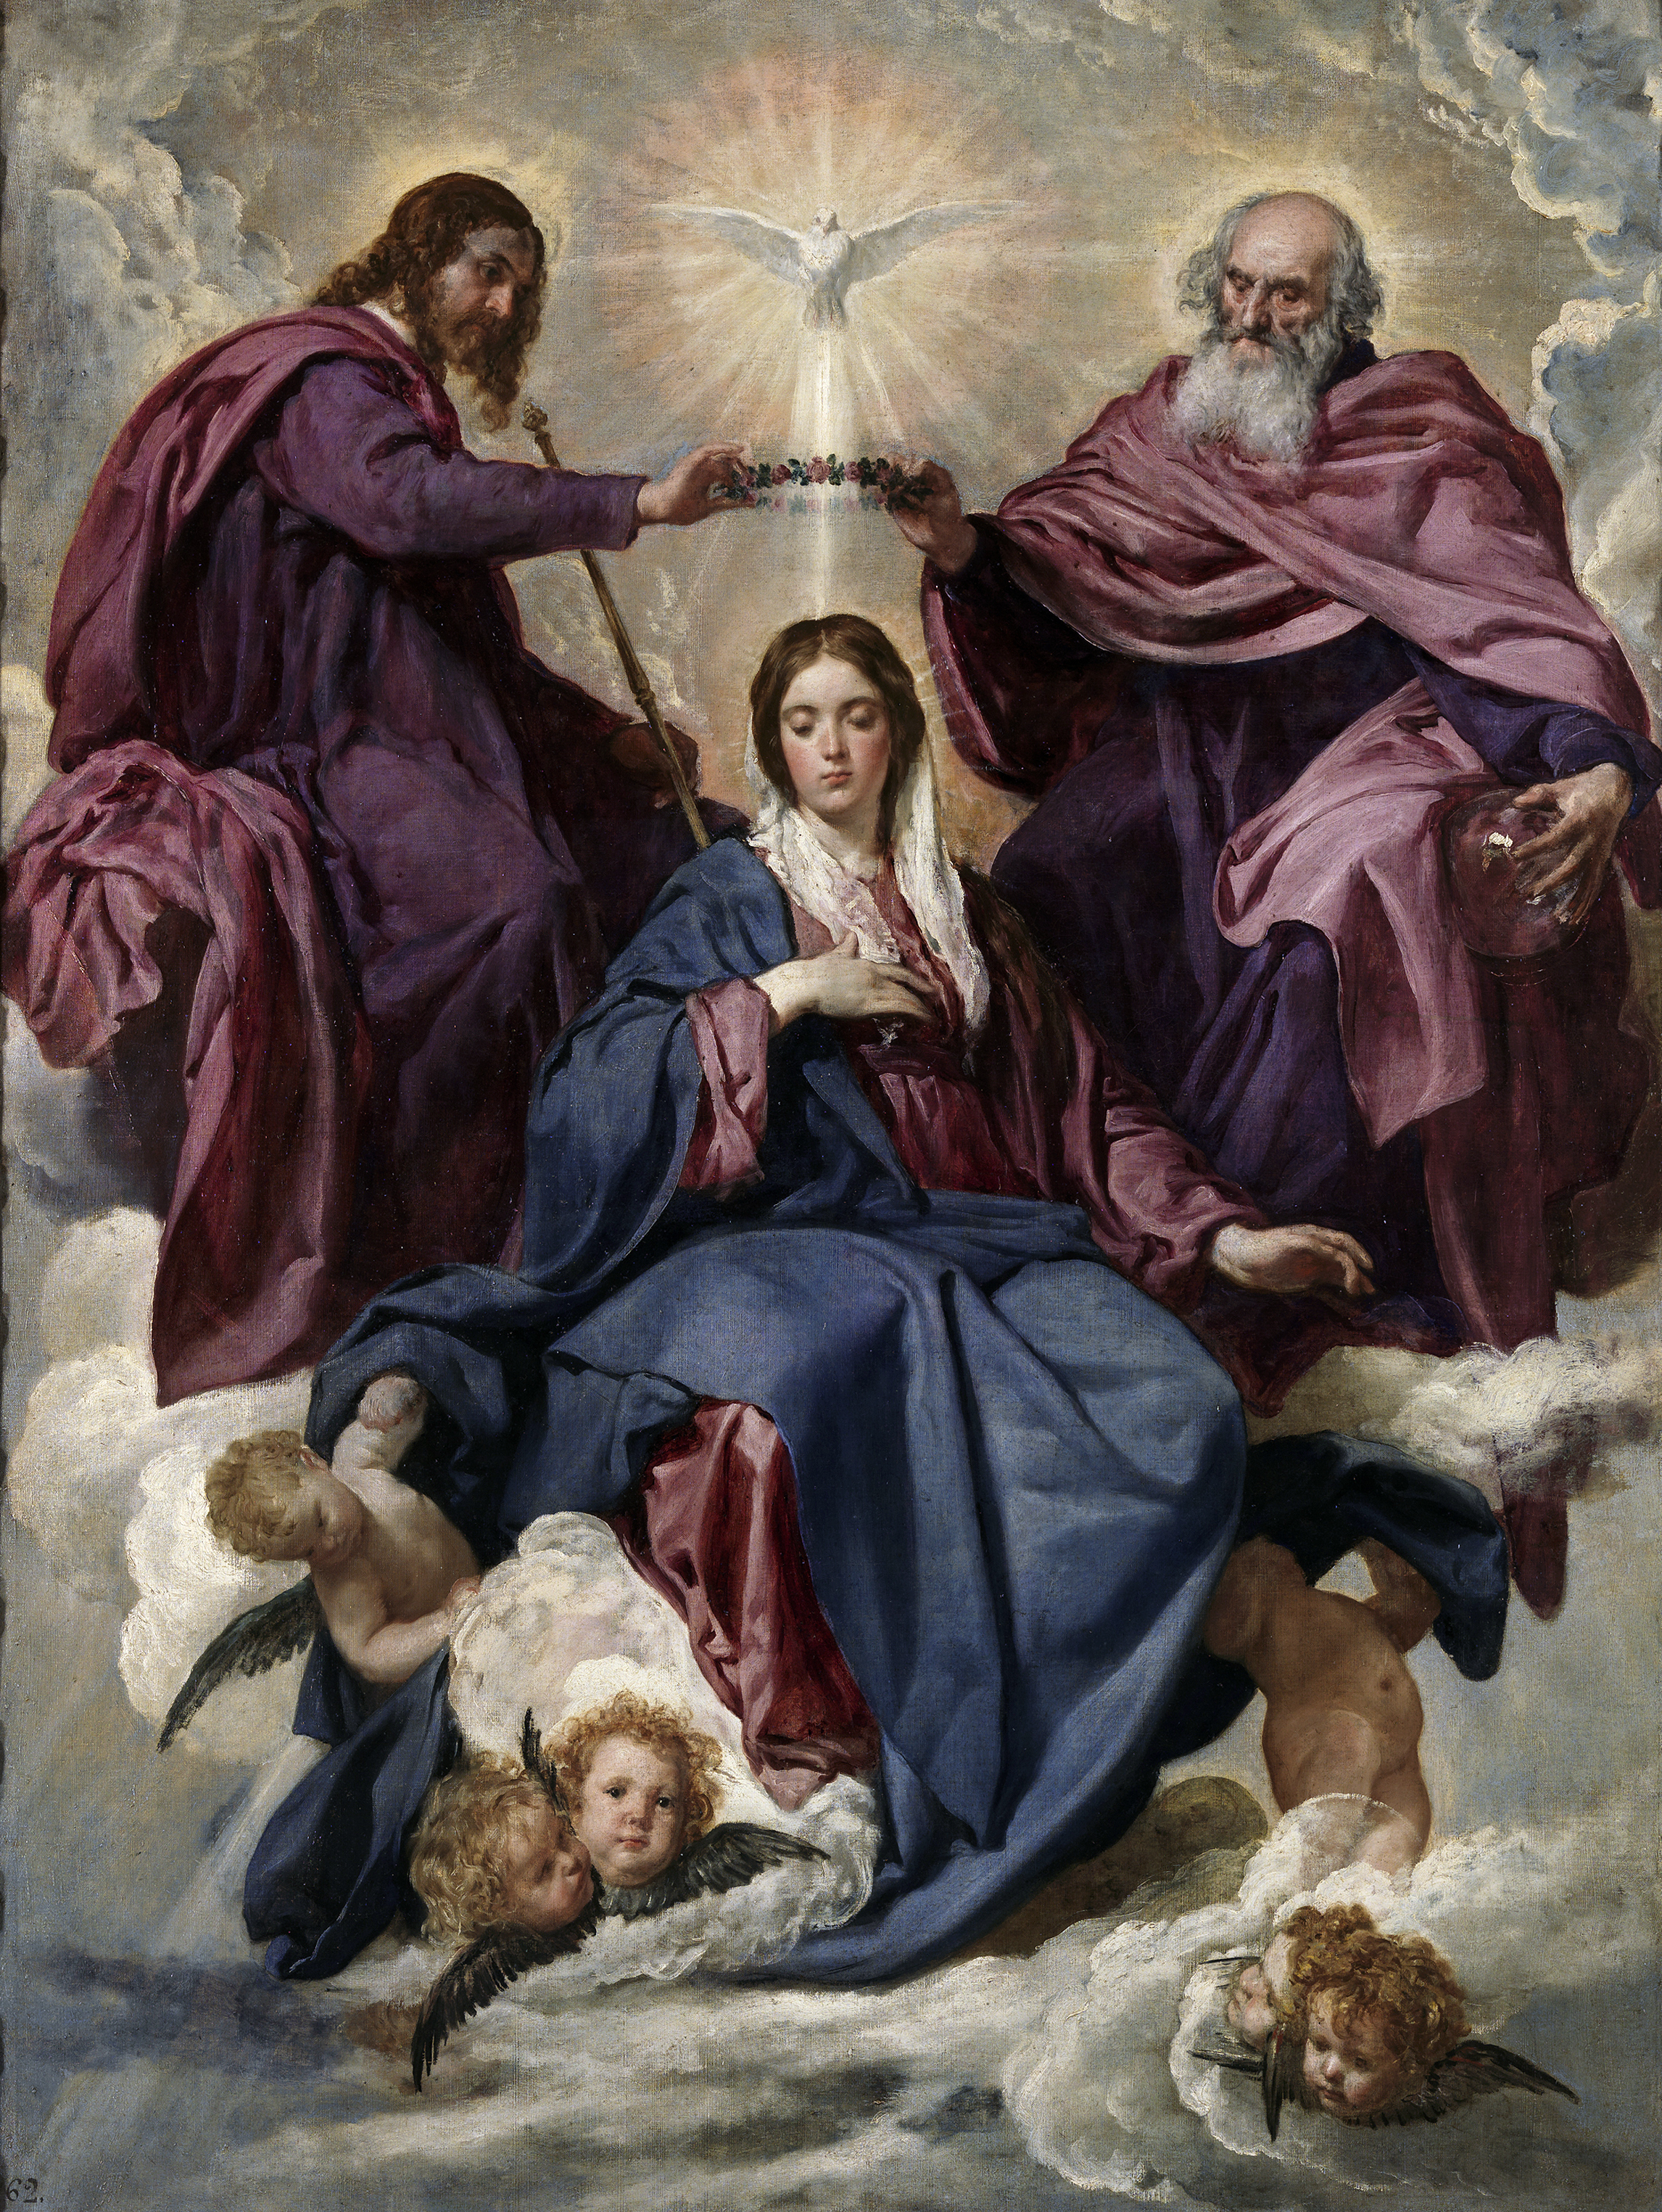 Queen of Heaven - Wikipedia